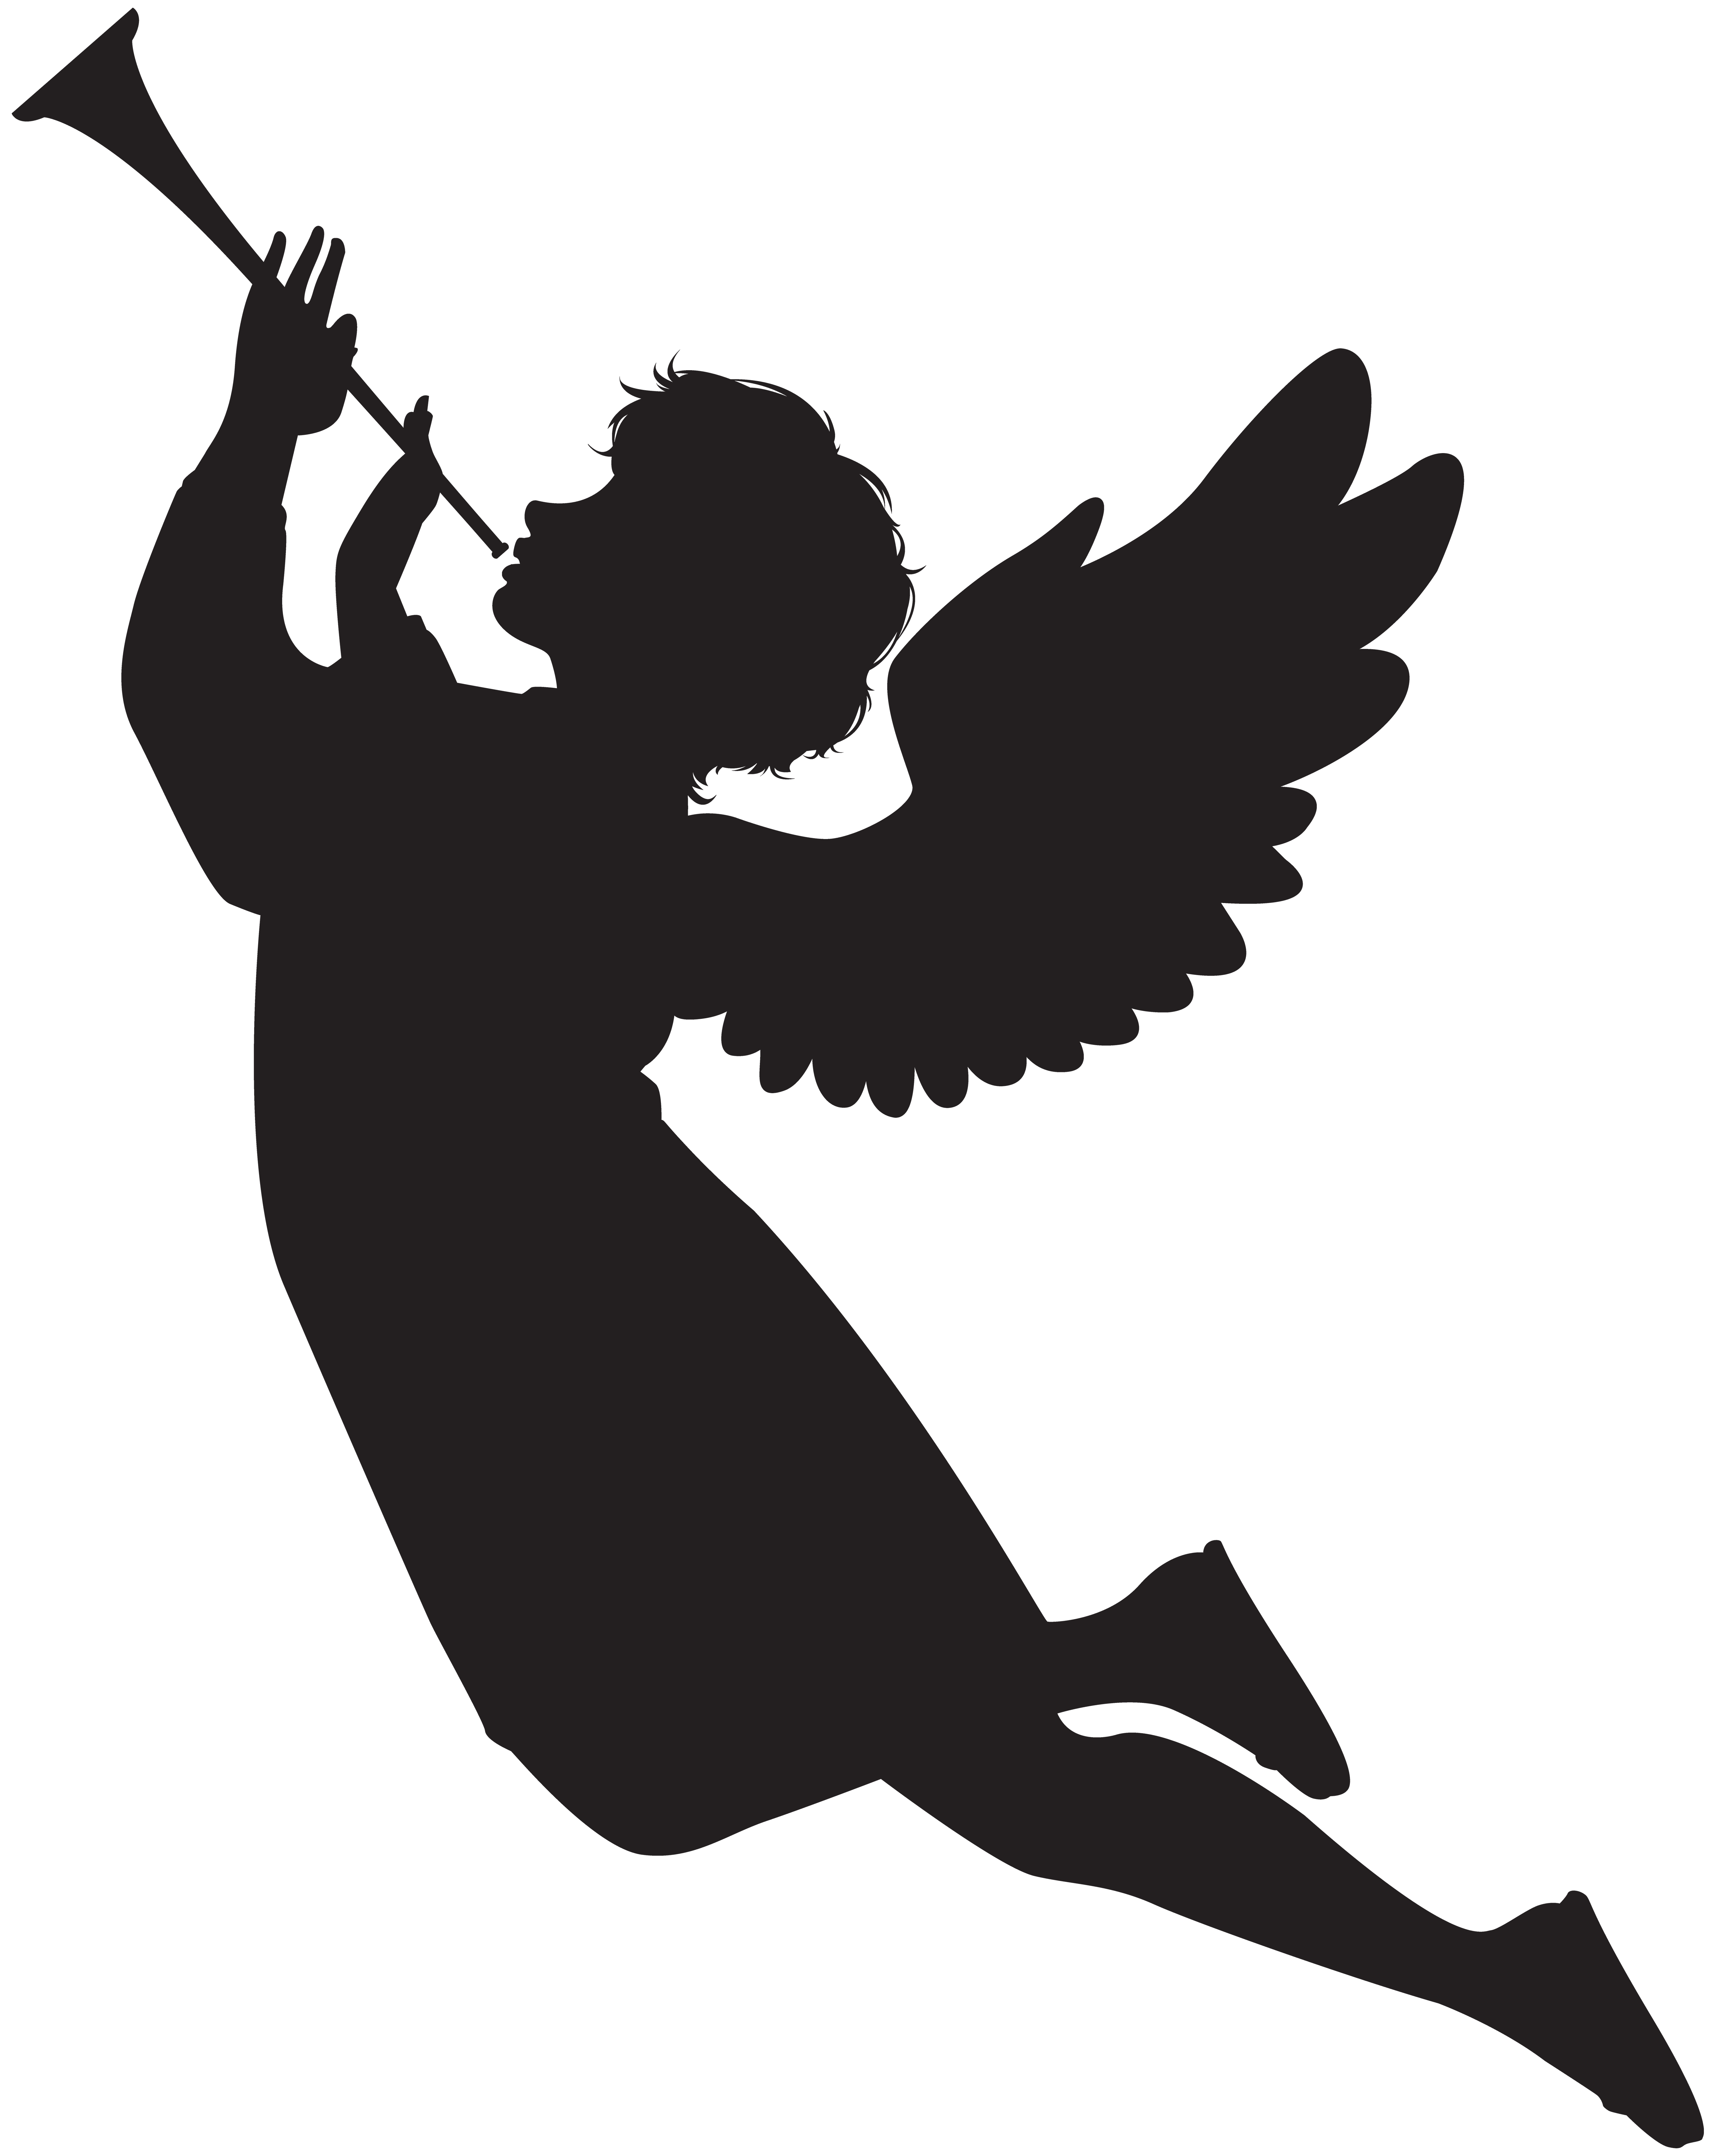 With fanfare png clip. Wing clipart silhouette angel